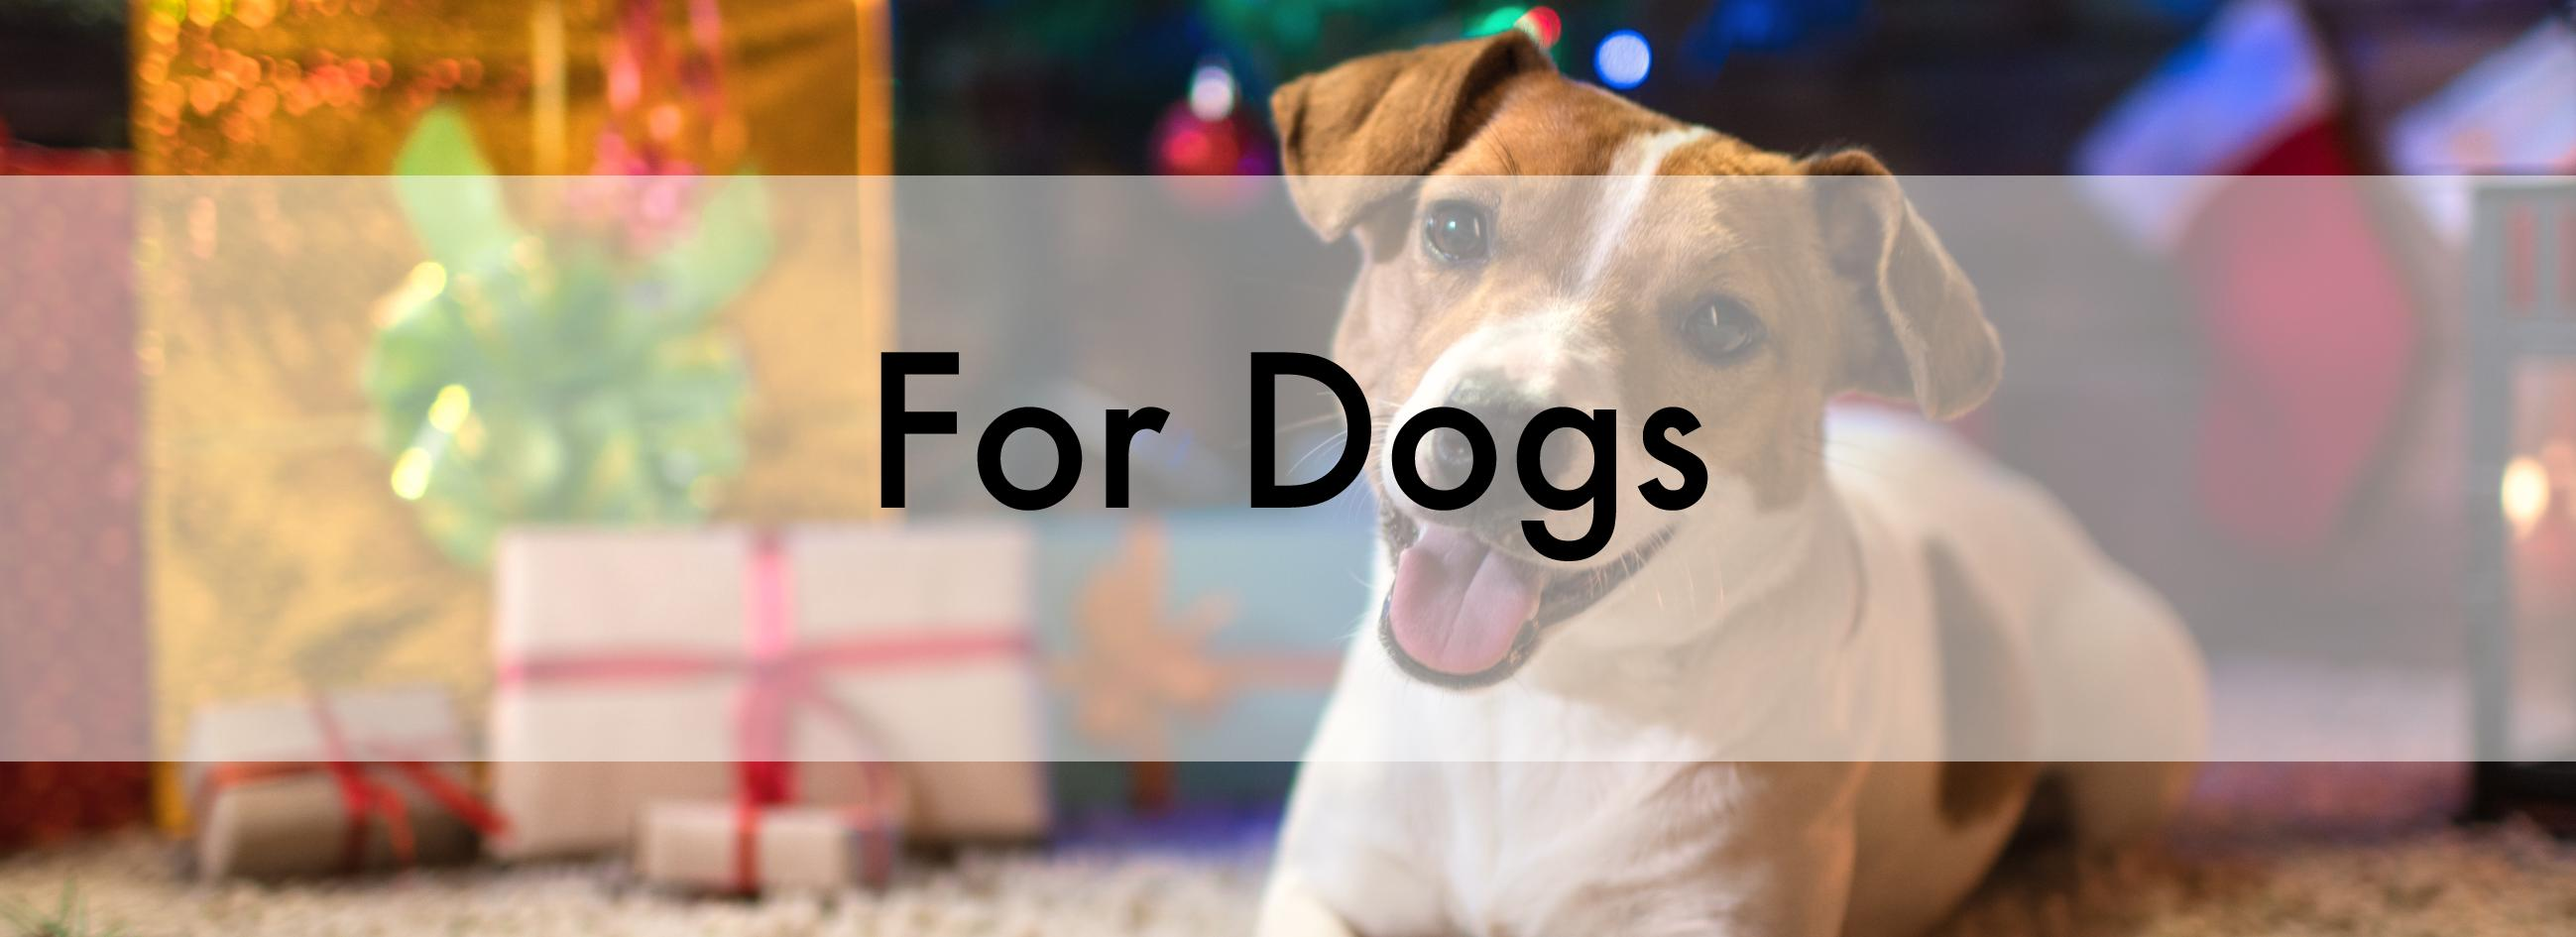 Christmas Banner for Dogs